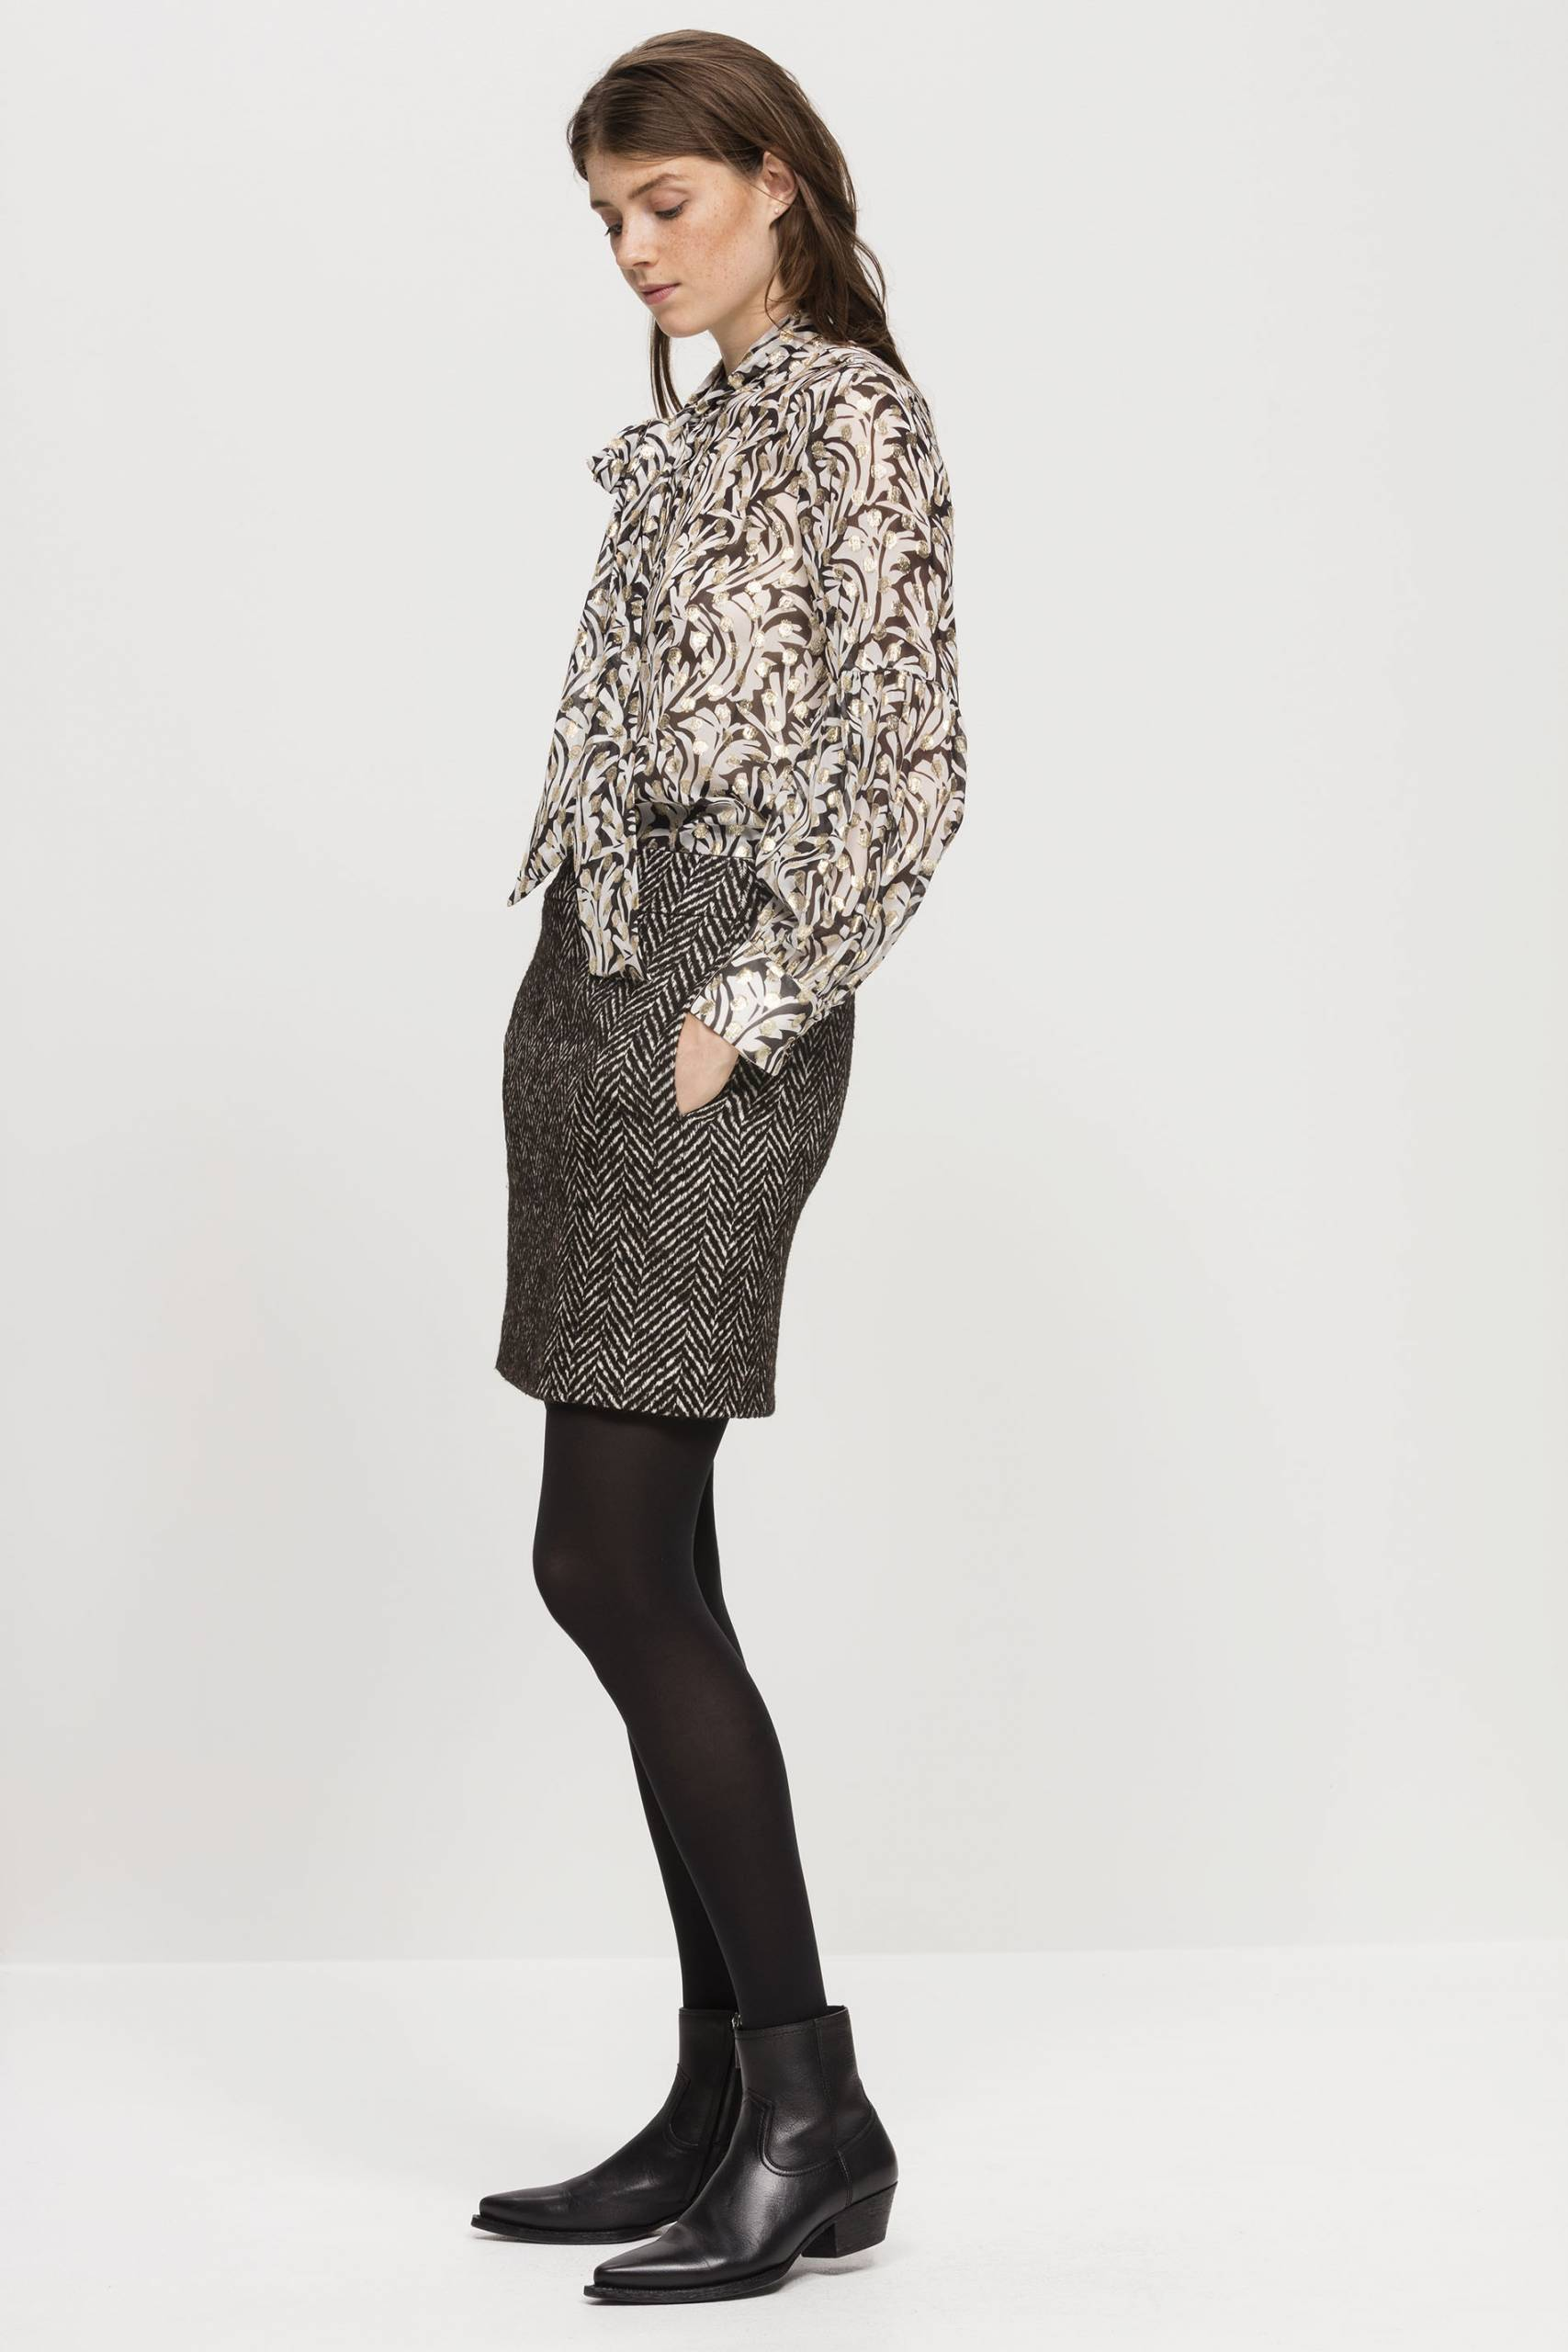 Jane Young Luisa Cerano Skirt and Blouse